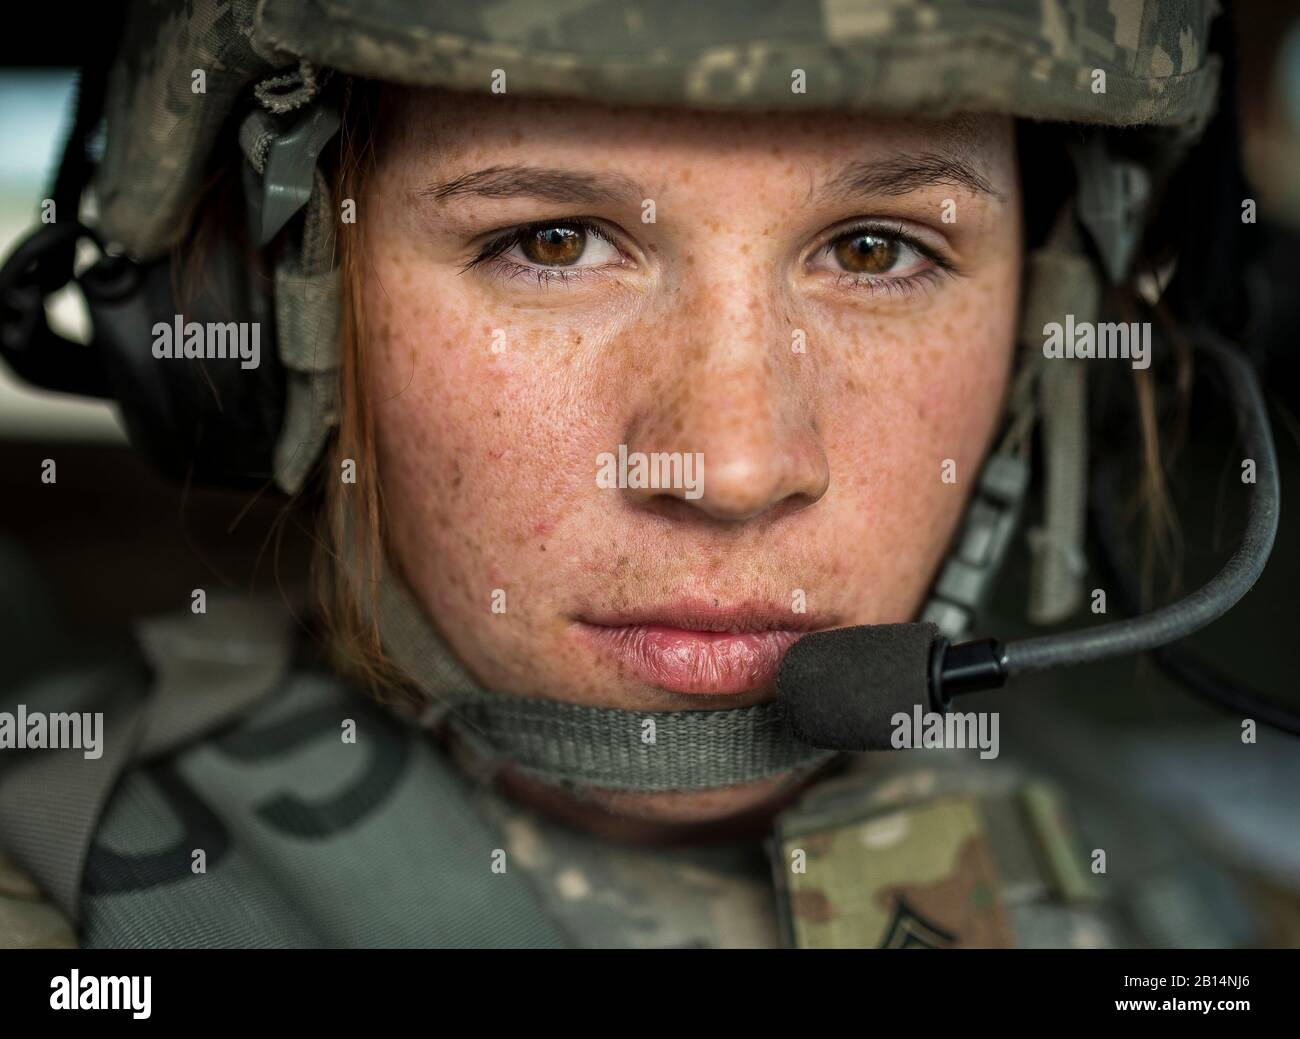 603rd Military Police Company High Resolution Stock Photography And Images Alamy